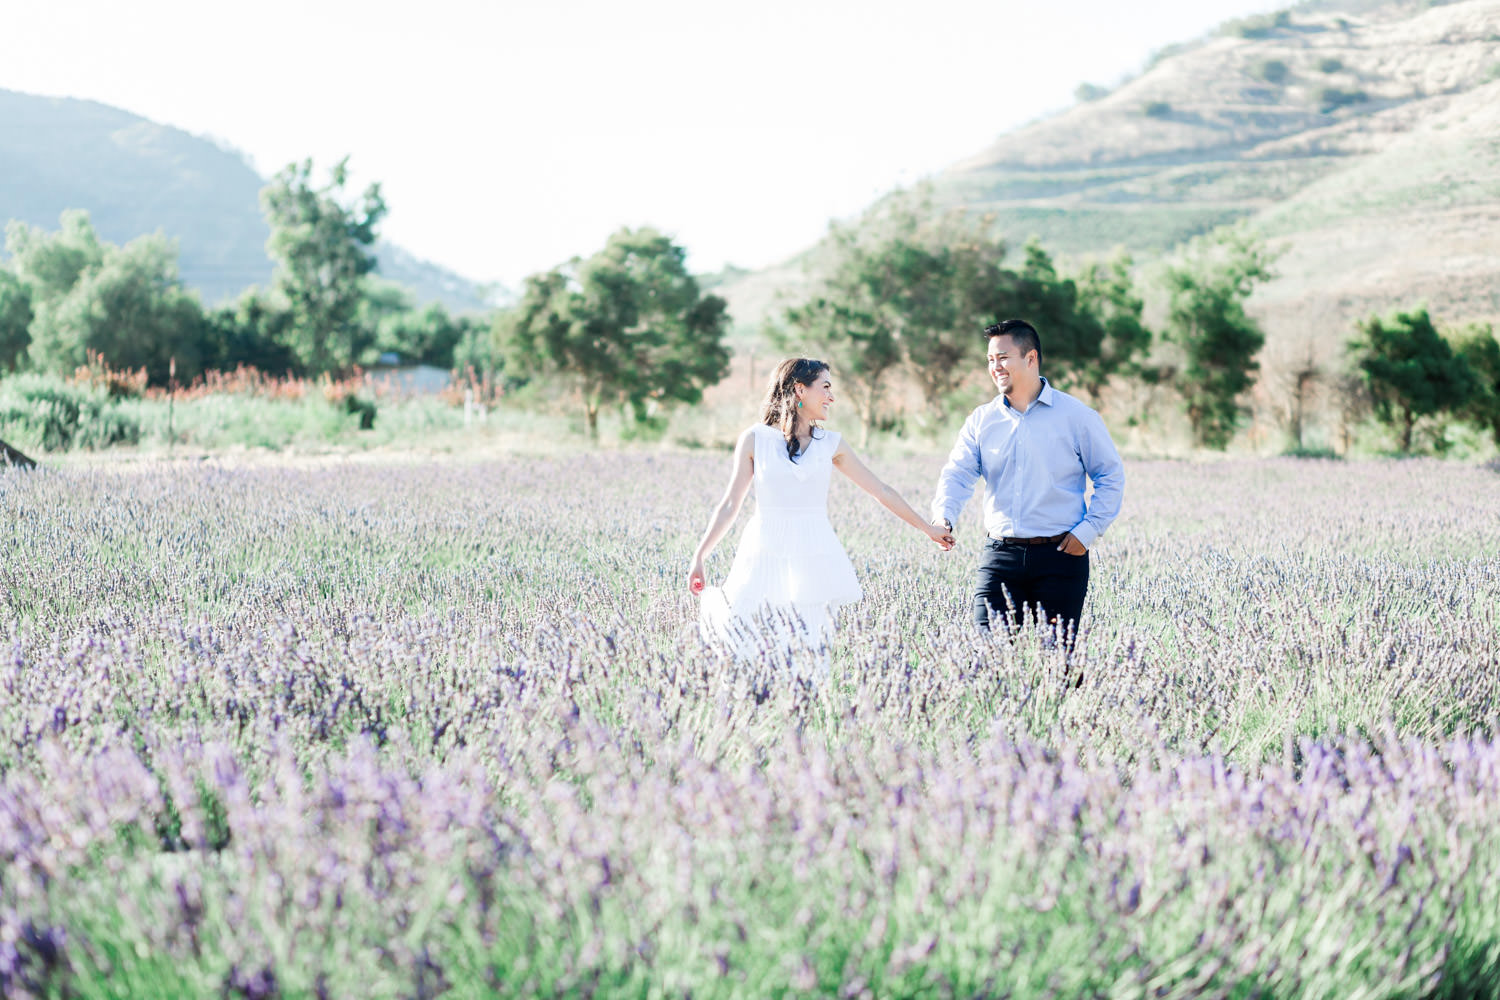 Formal + Chic San Diego Lavender Field Engagement Photos